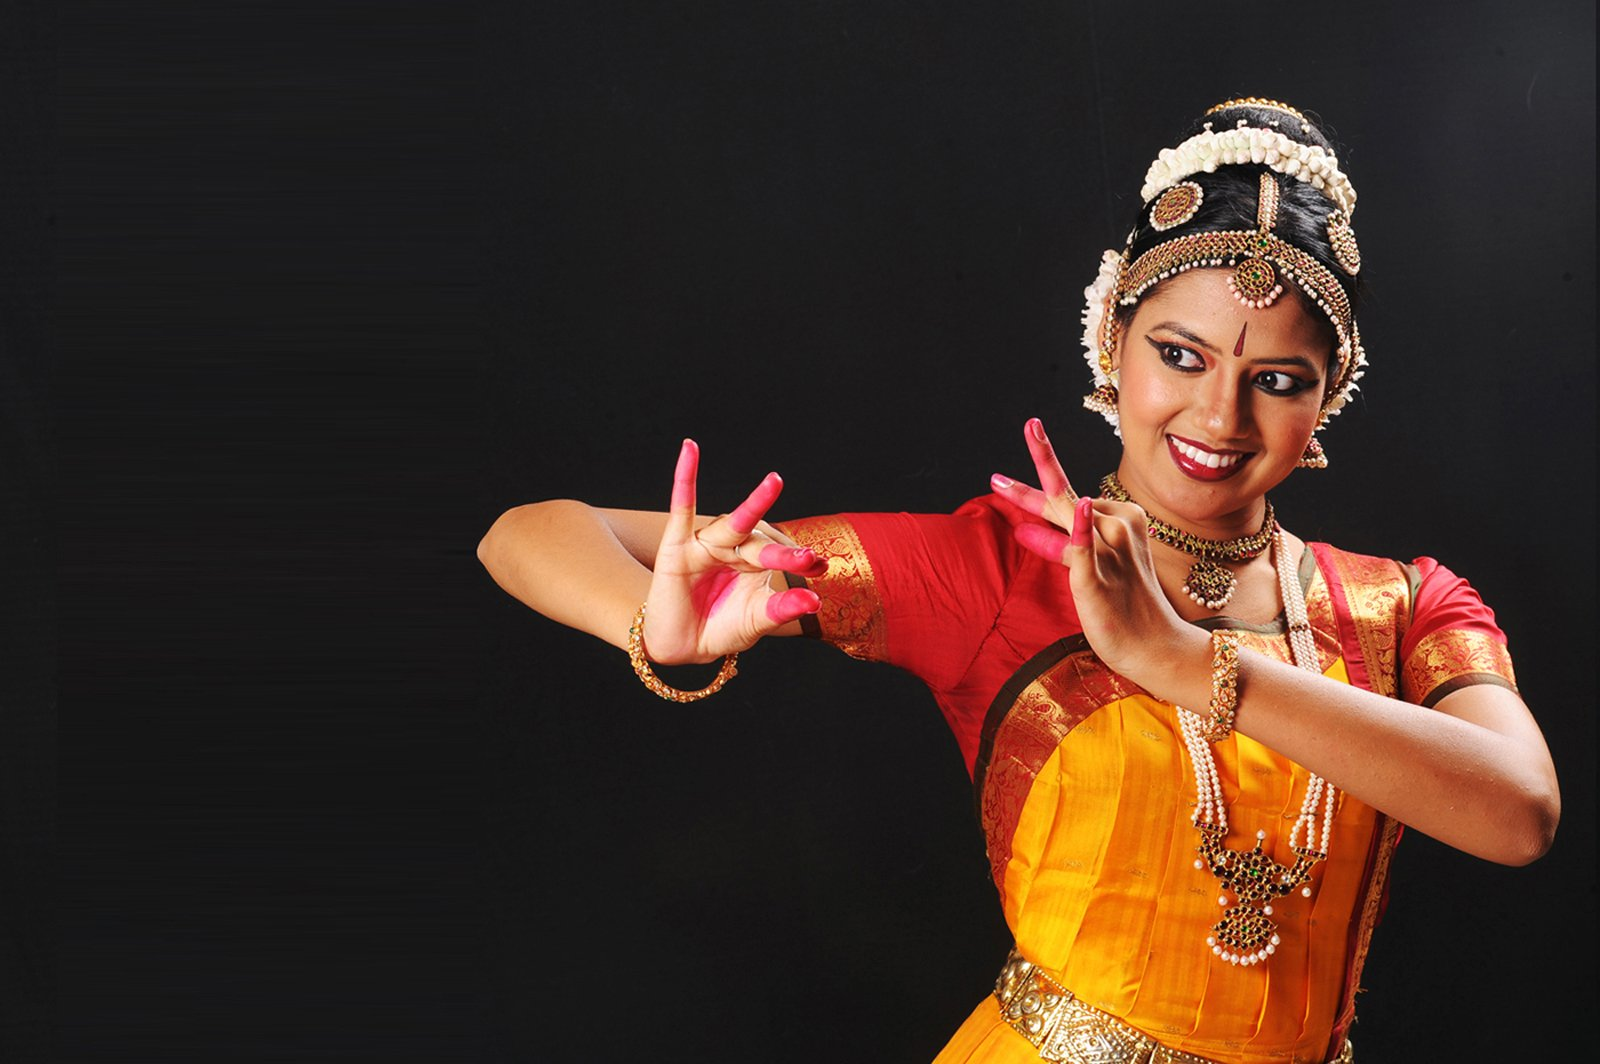 krishna pose indian dance classical bharatanatyam costume